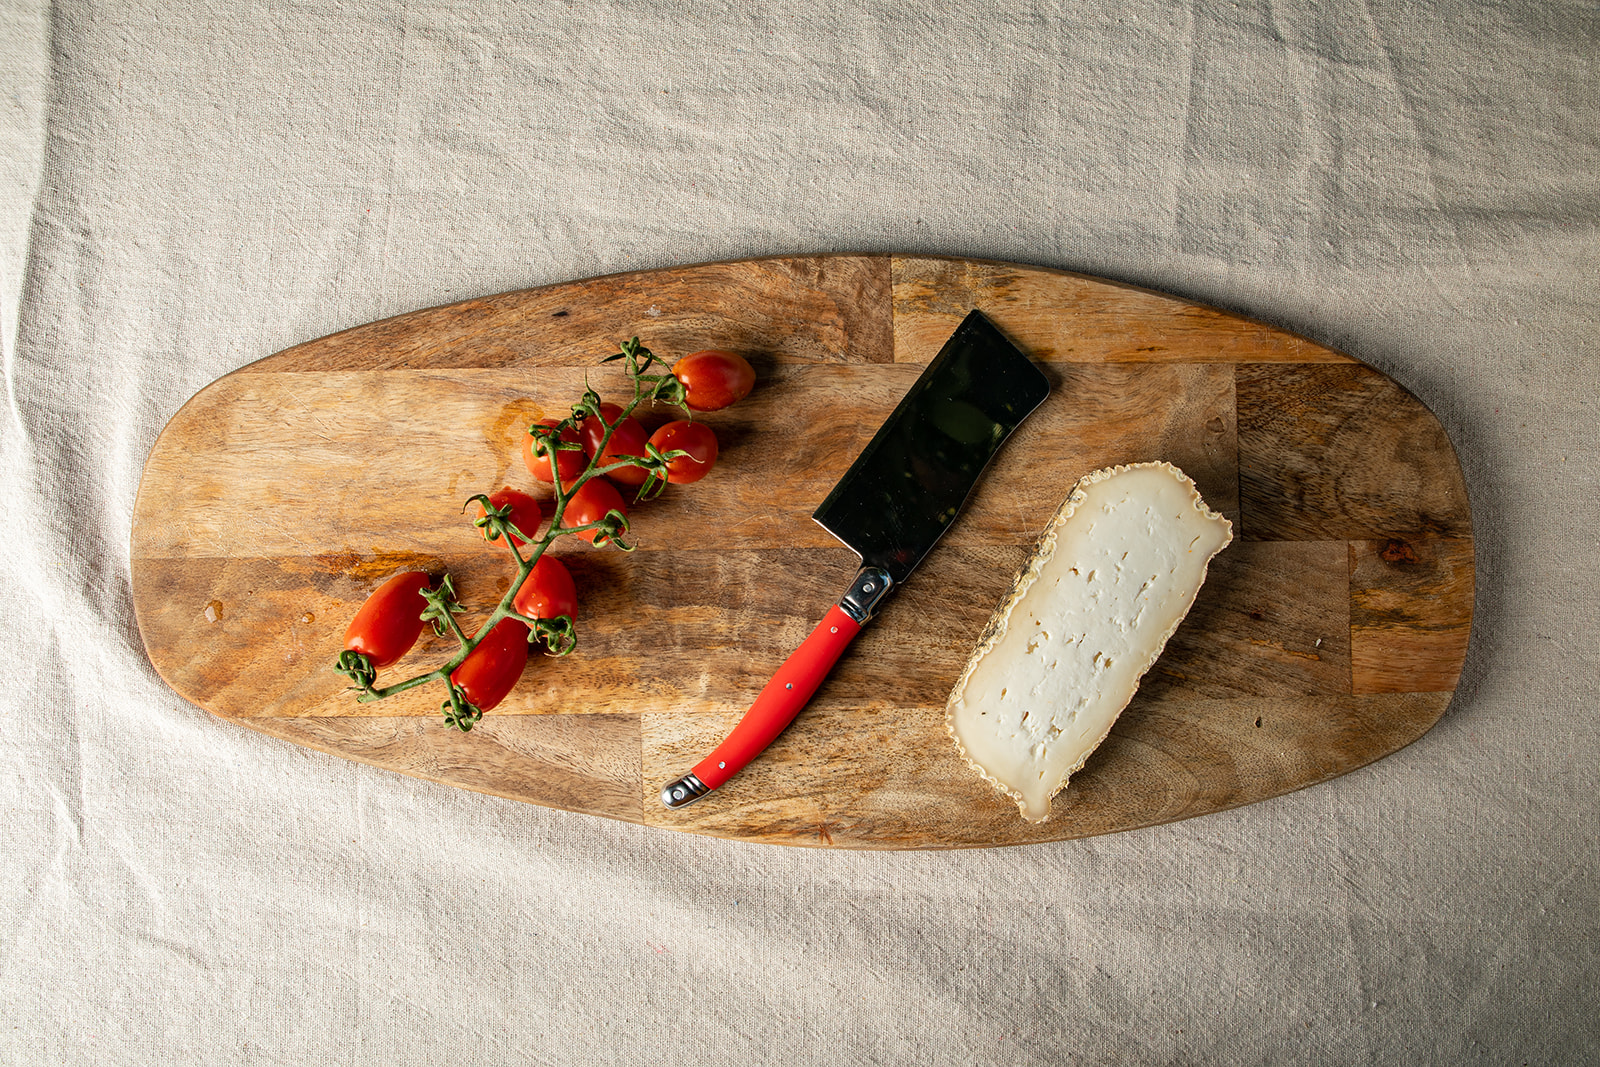 Designed Cheese Slicing Knife